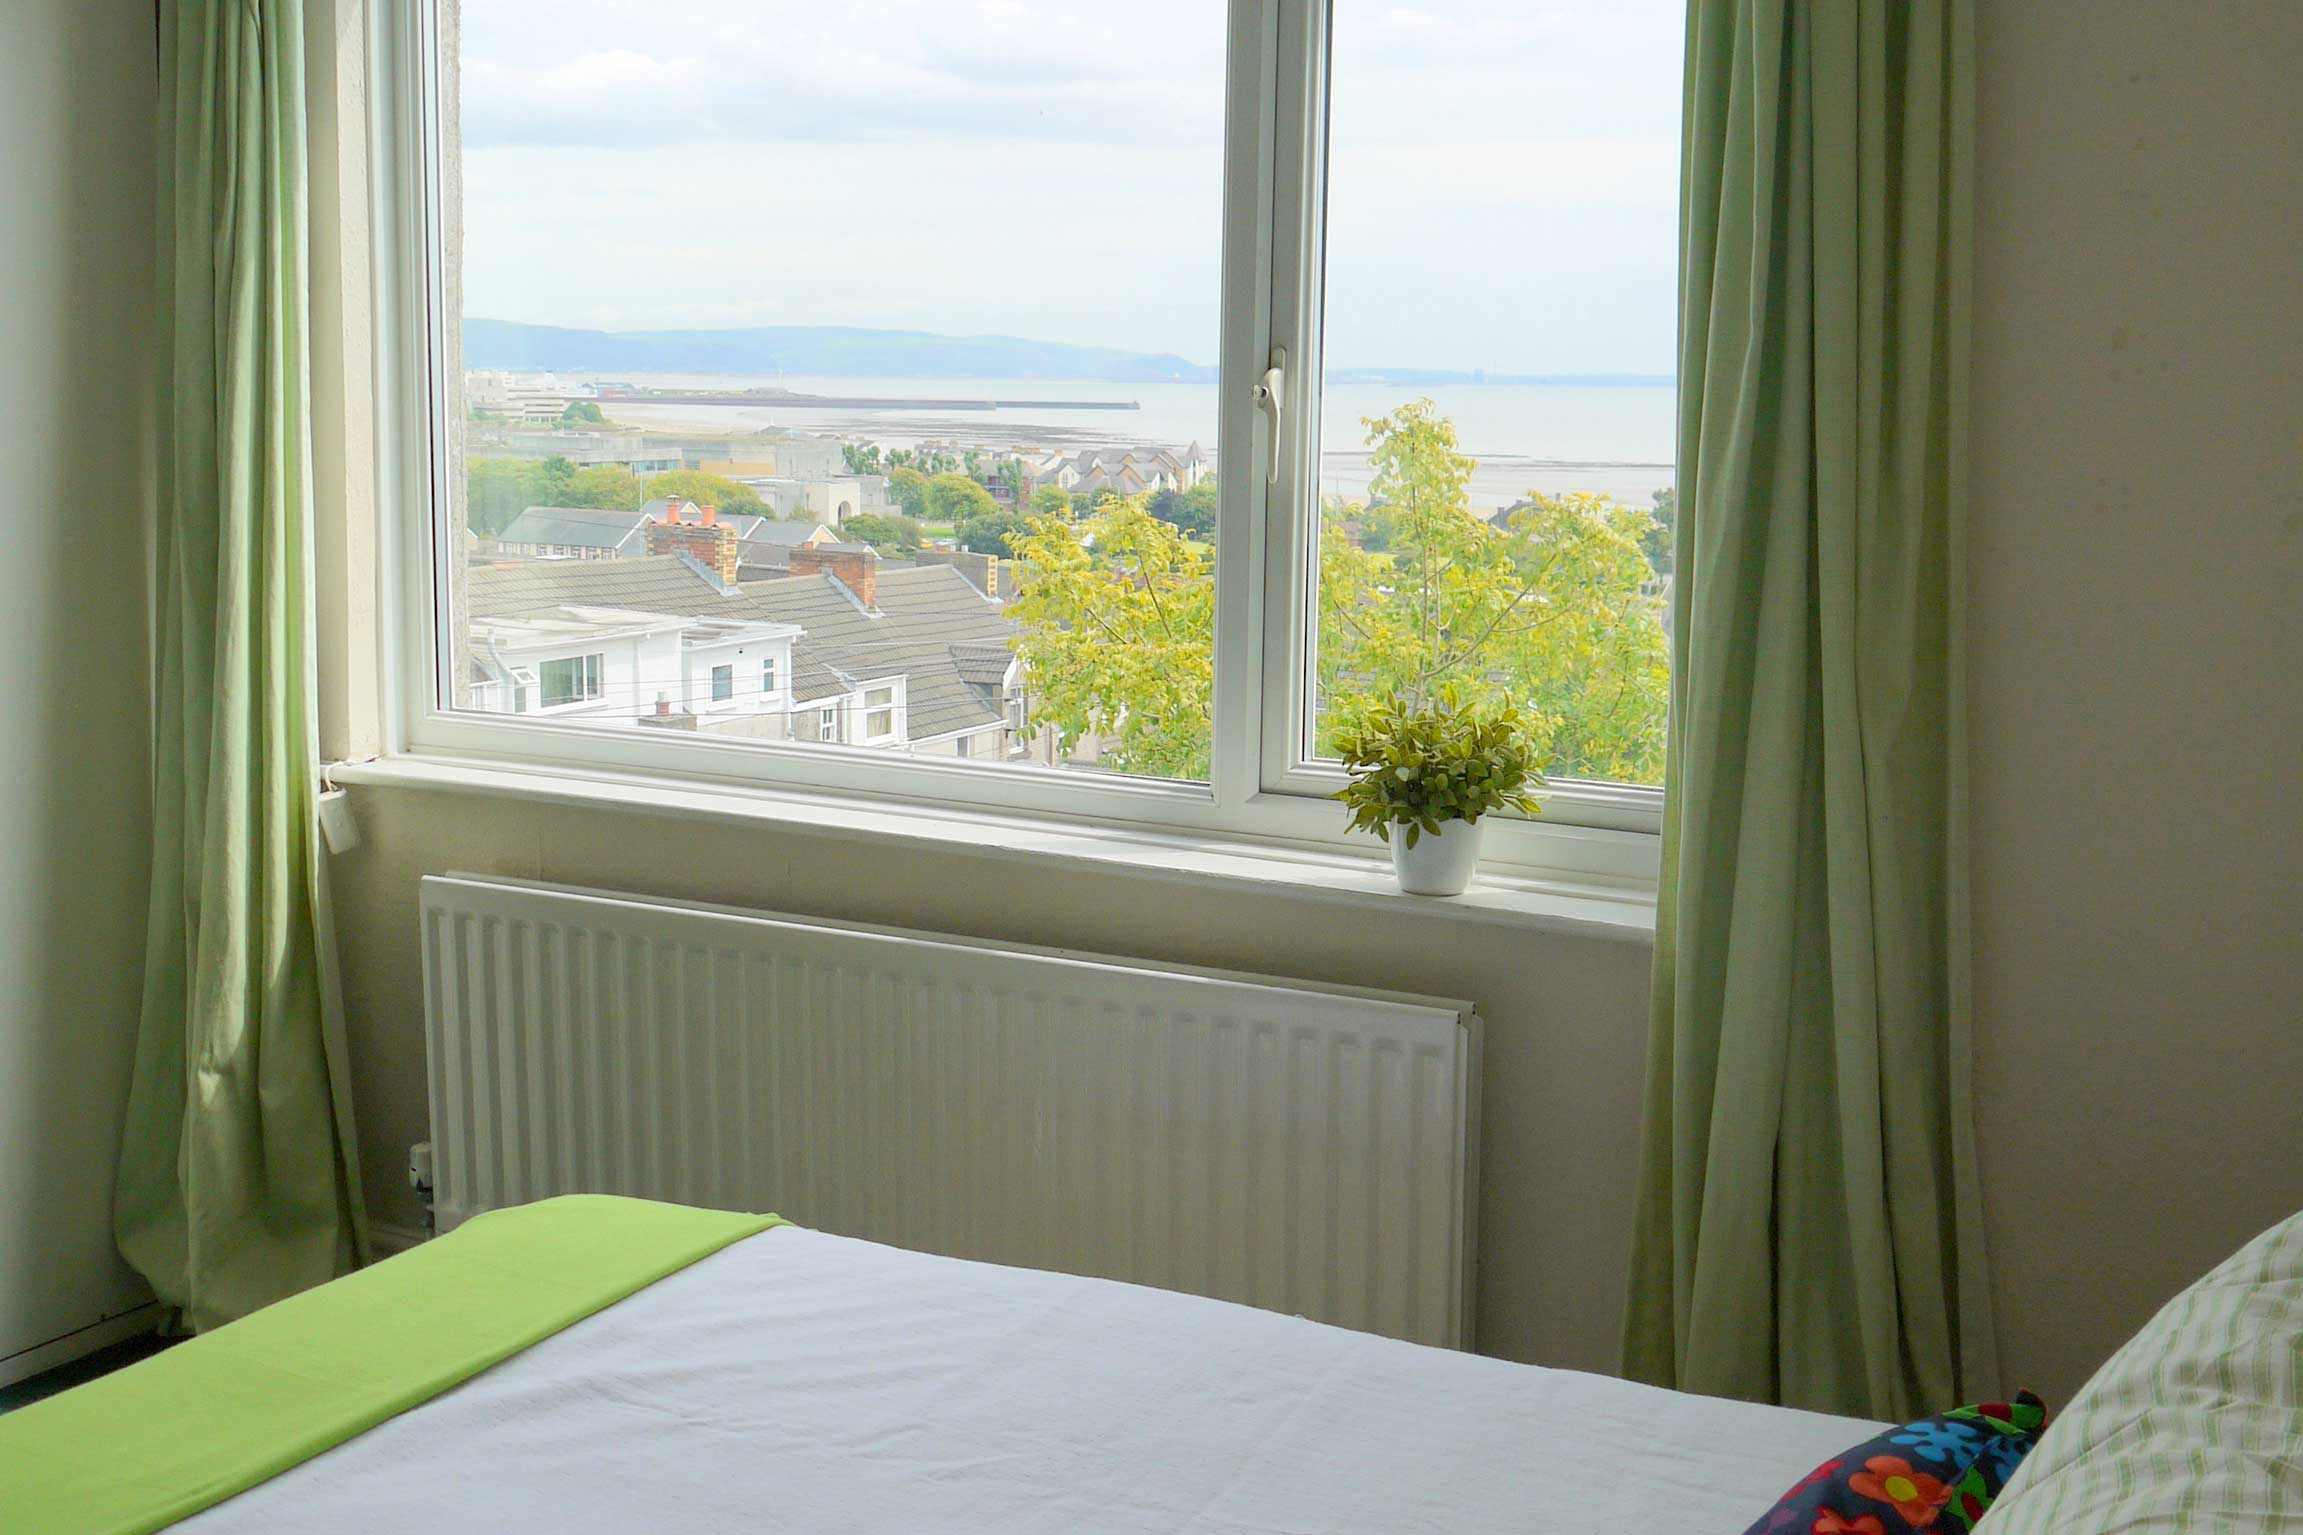 Student house for rent at 13 St Albans Road, Brynmill, Swansea